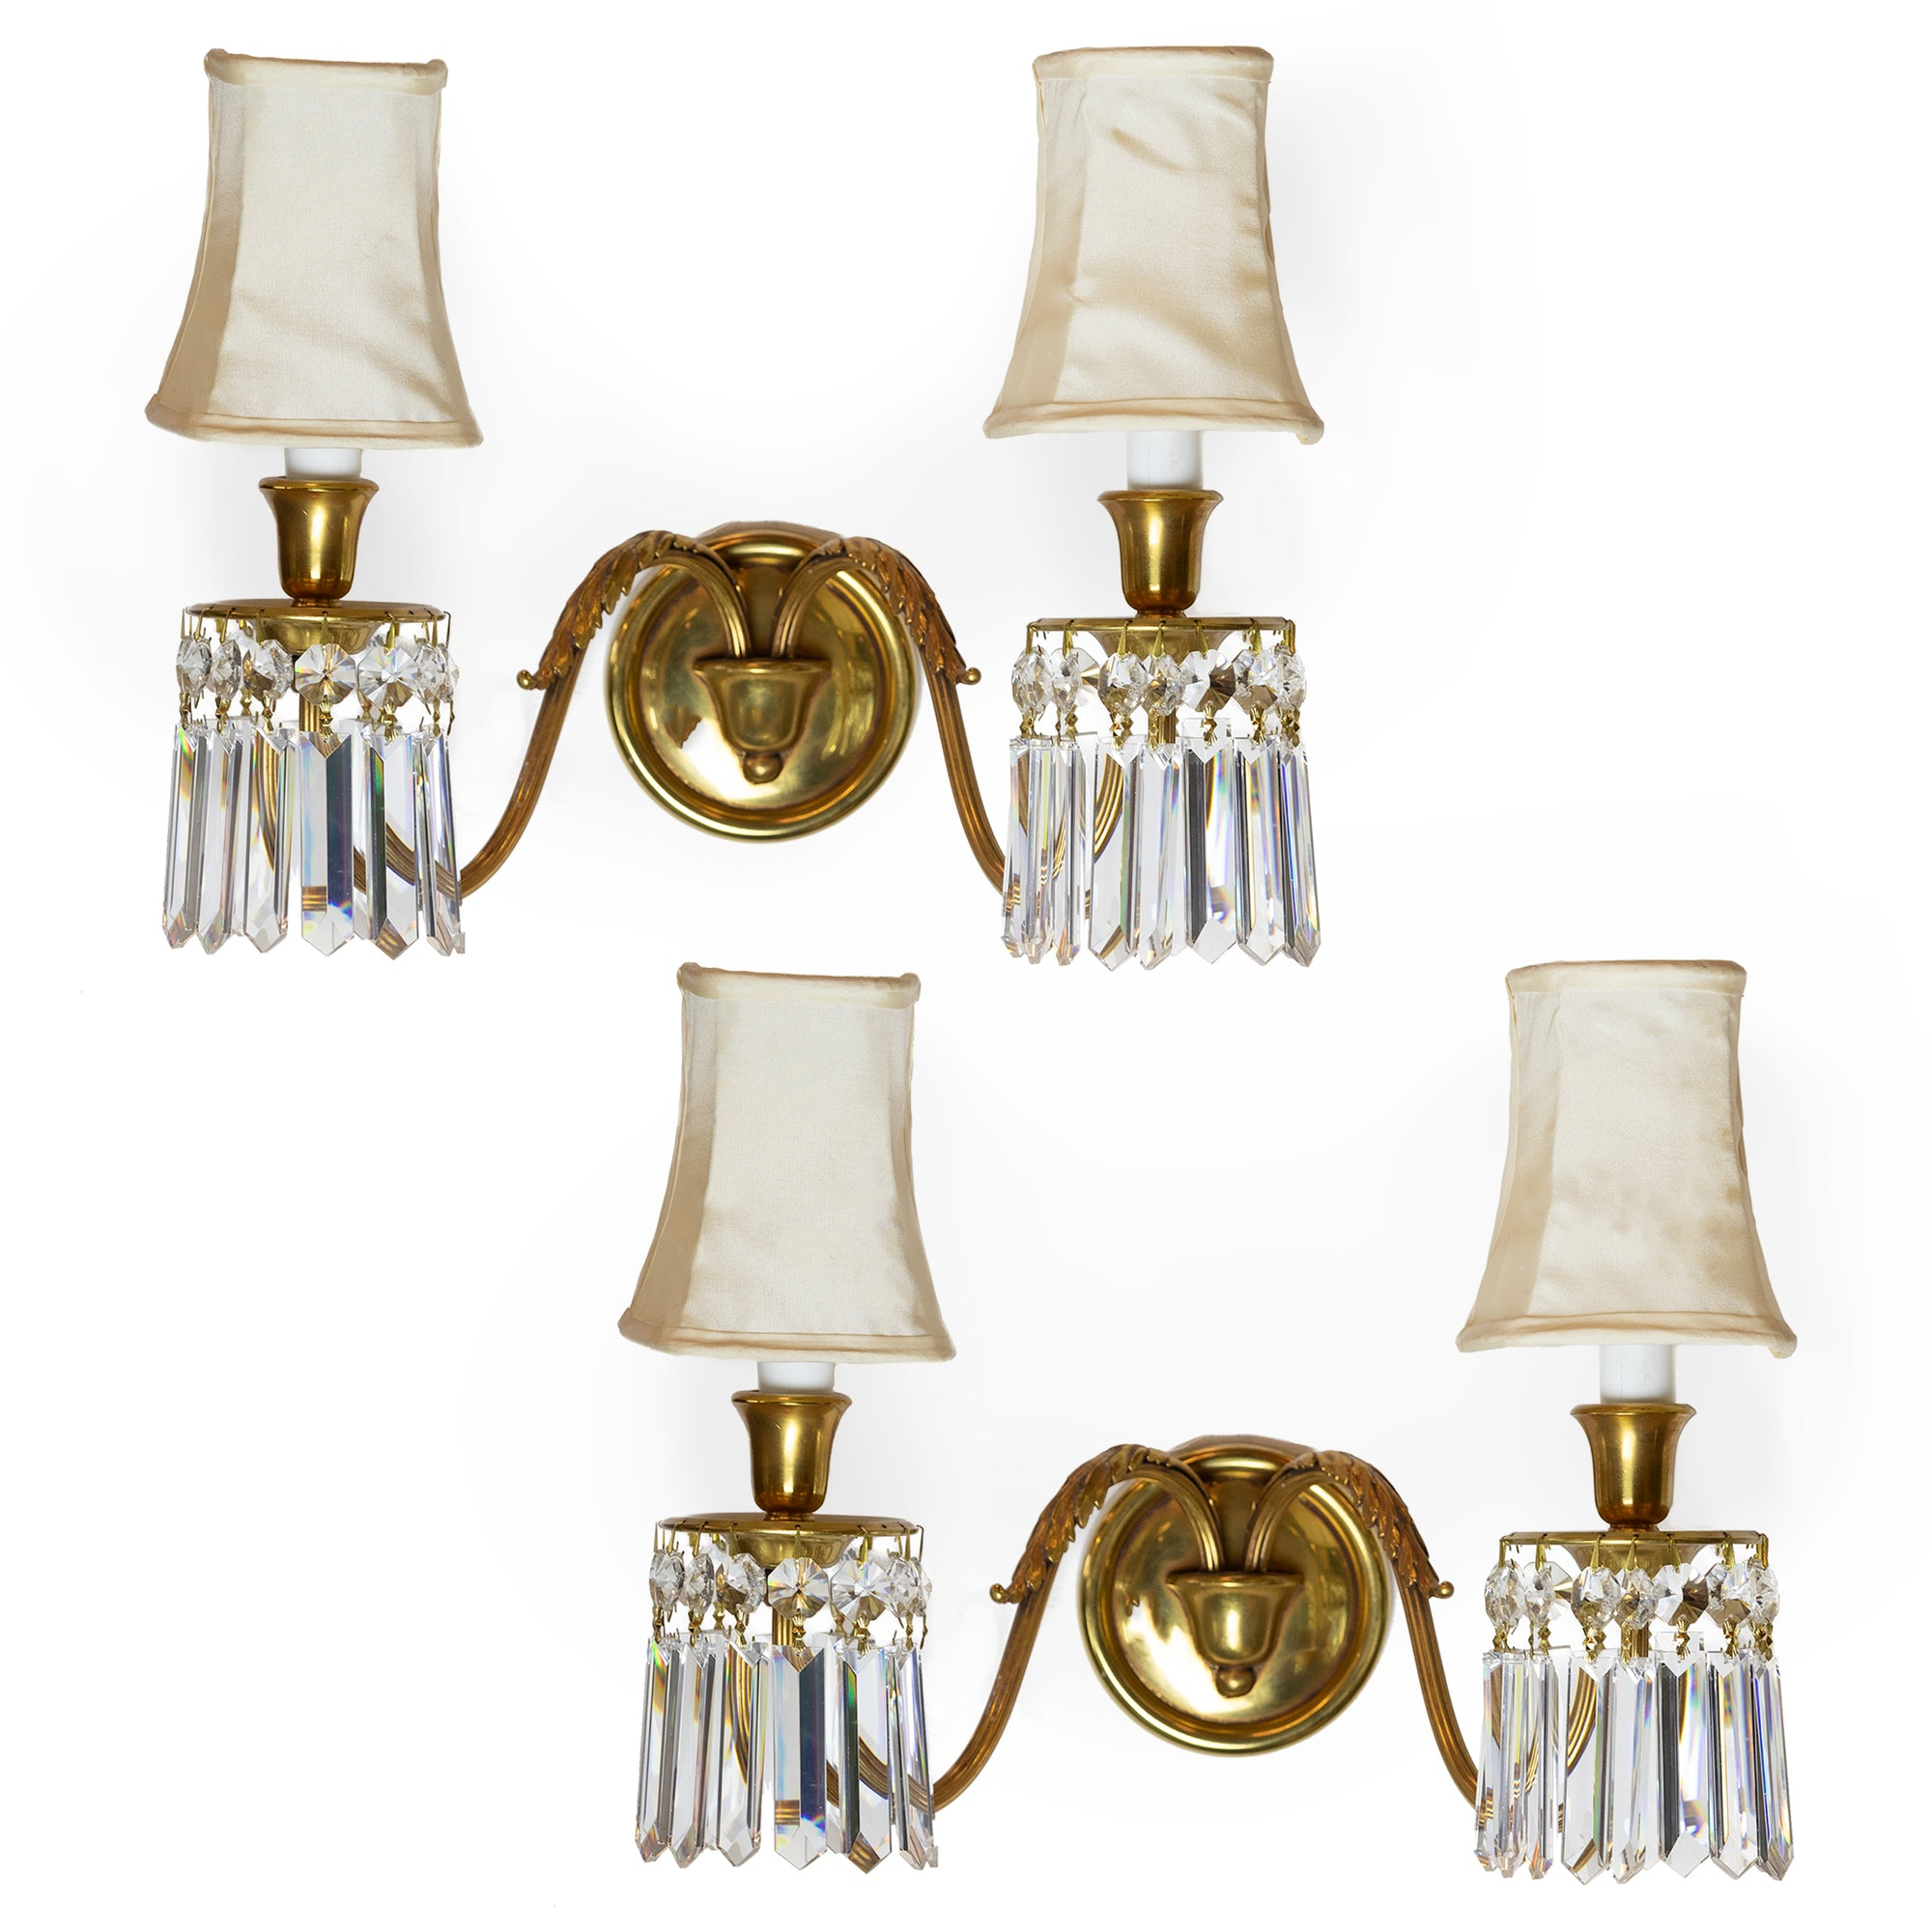 Reclaimed Brass and Crystal Chandelier Wall Light Sconces with Shades